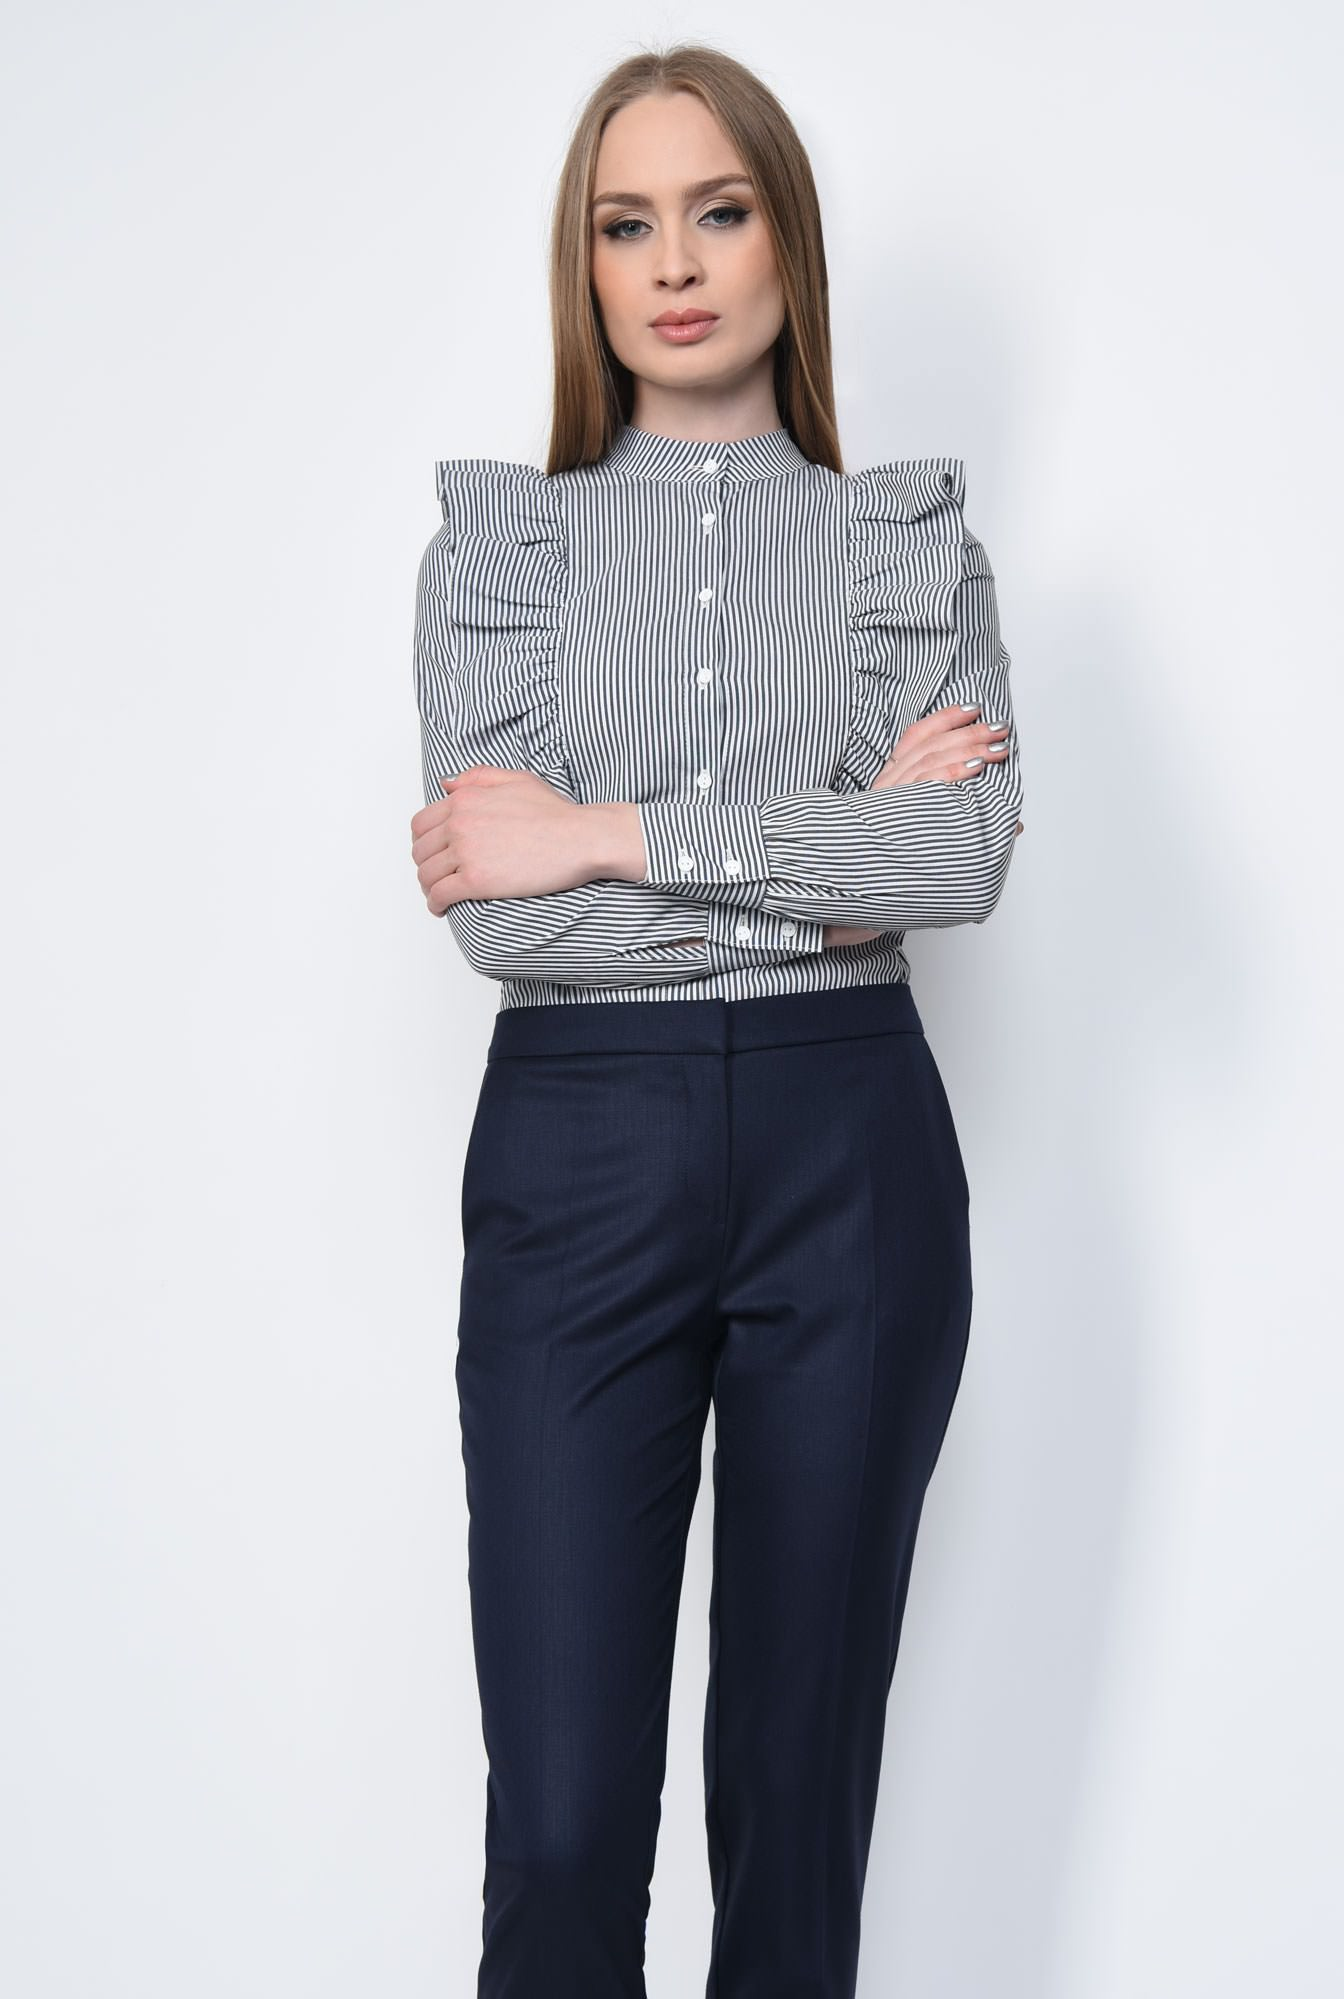 0 - PANTALON OFFICE CONIC PT 143-BLEUMARIN